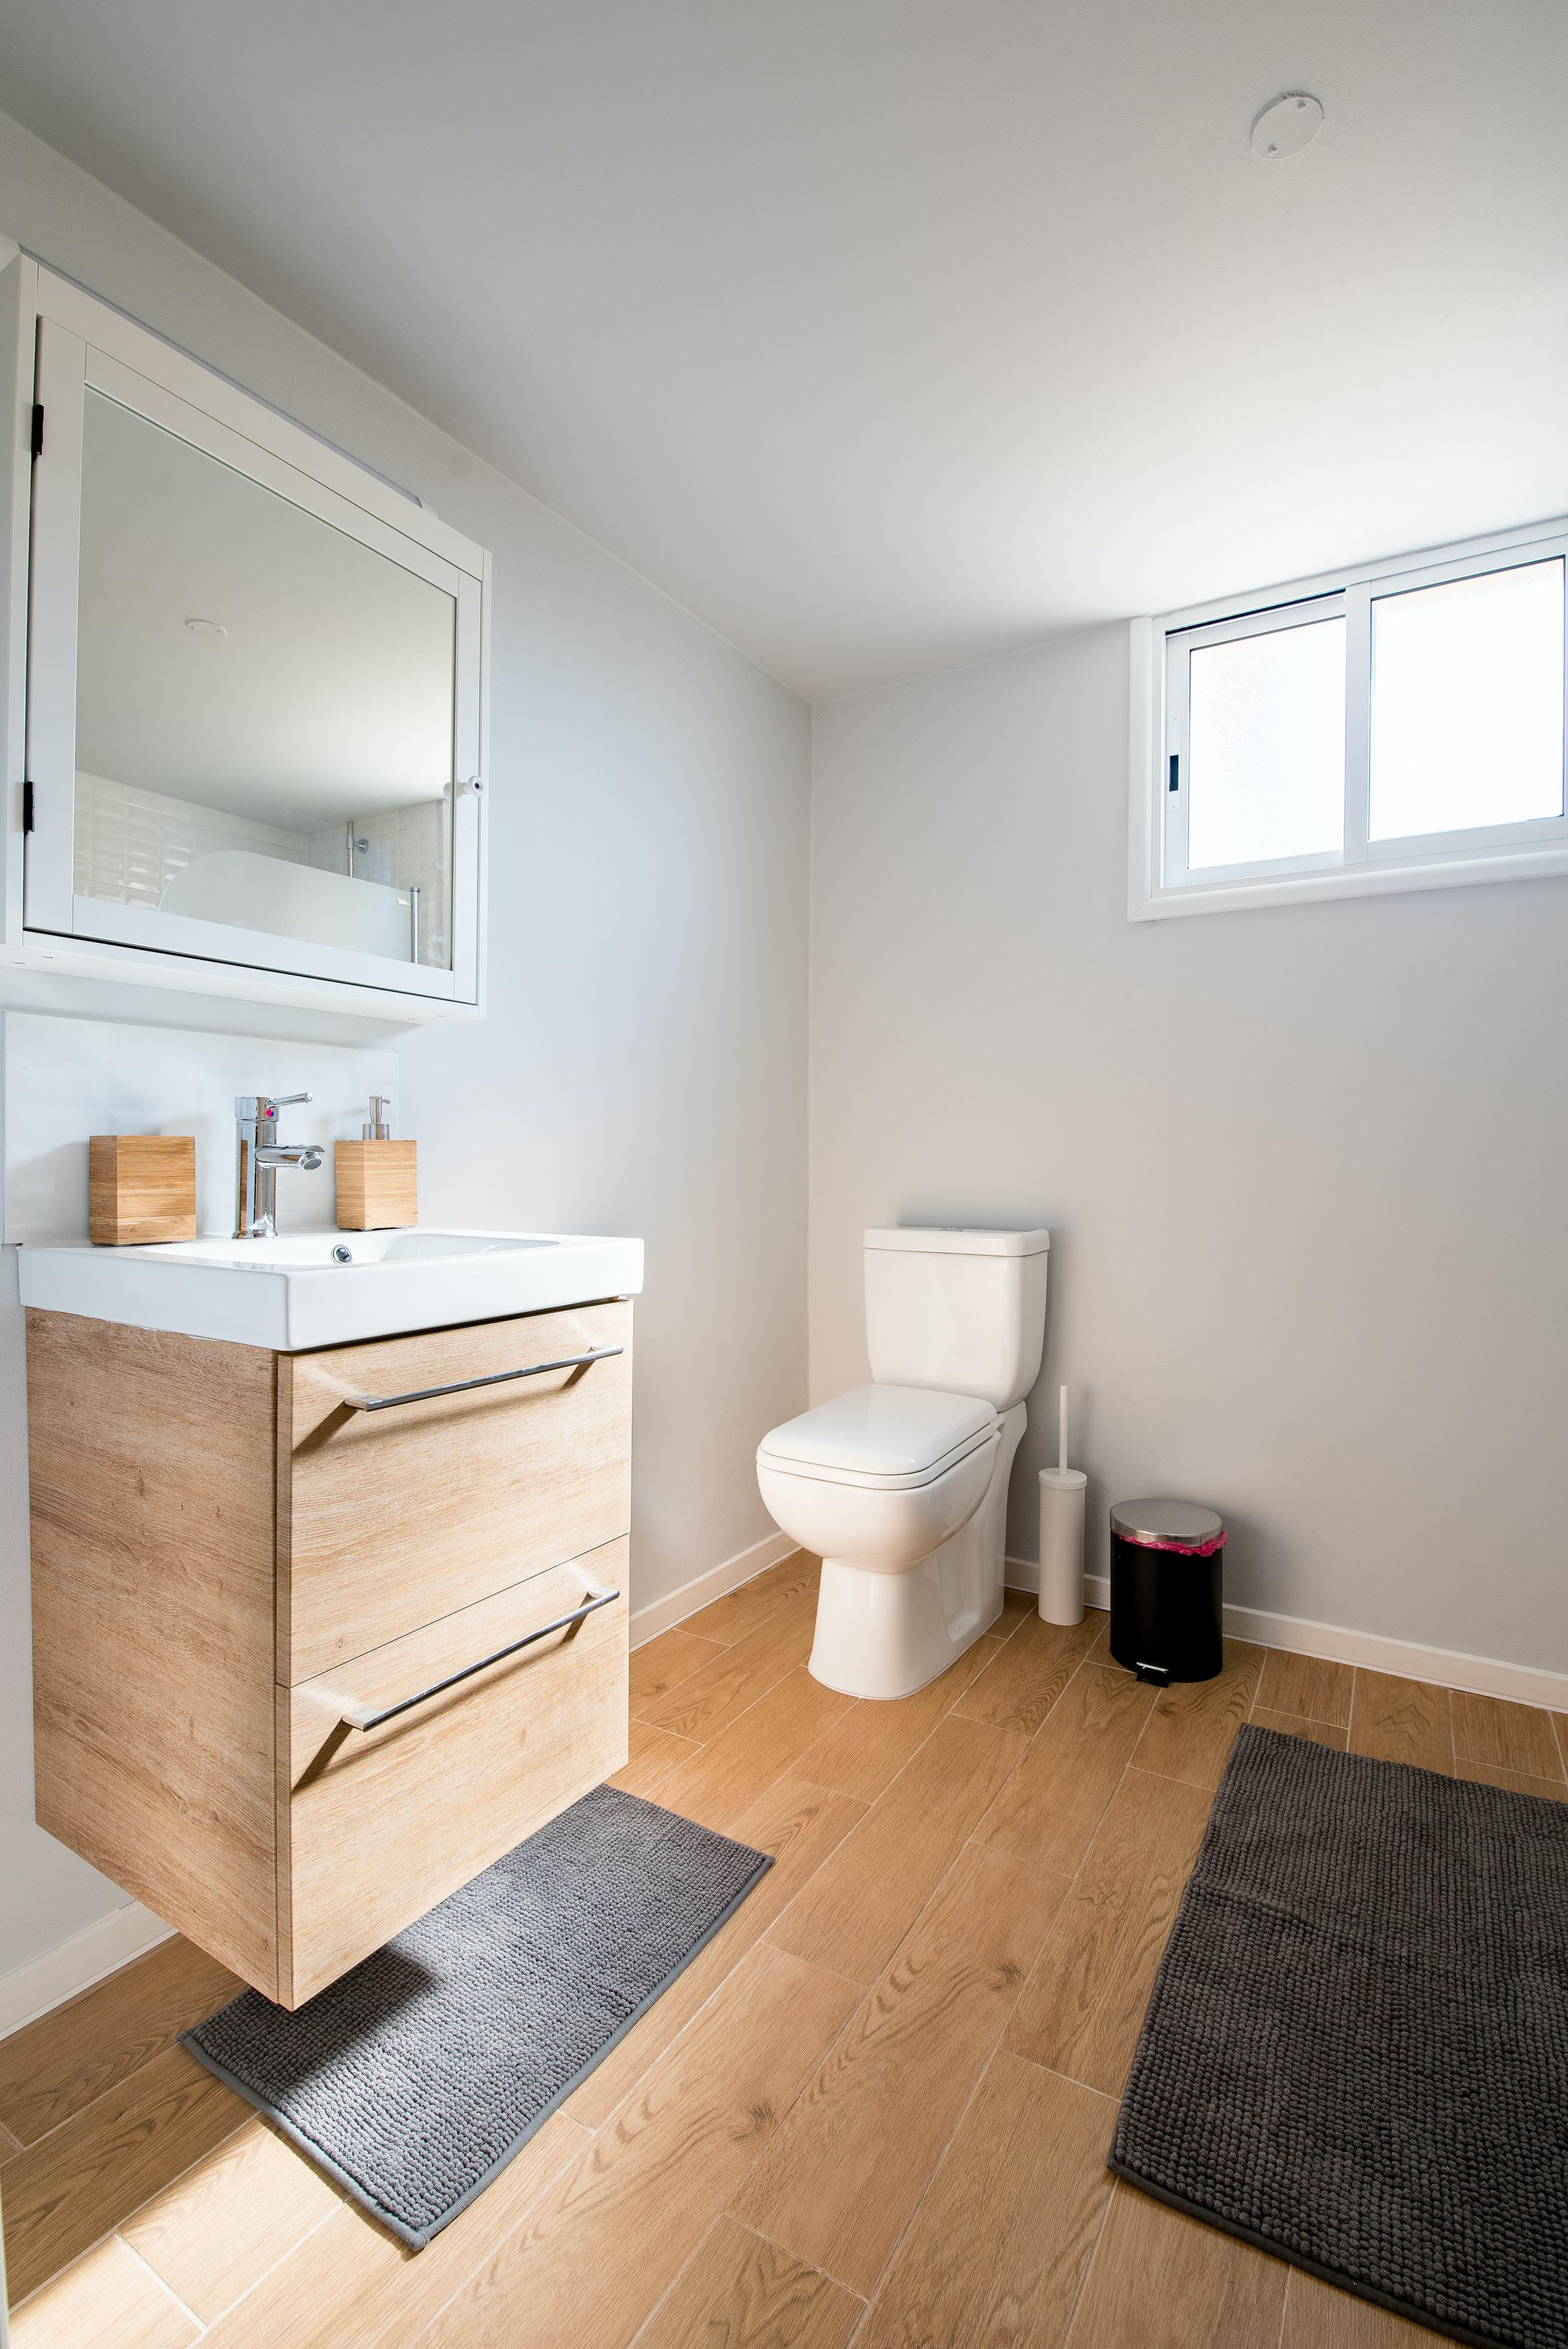 Vancouver toilet cleaning services.